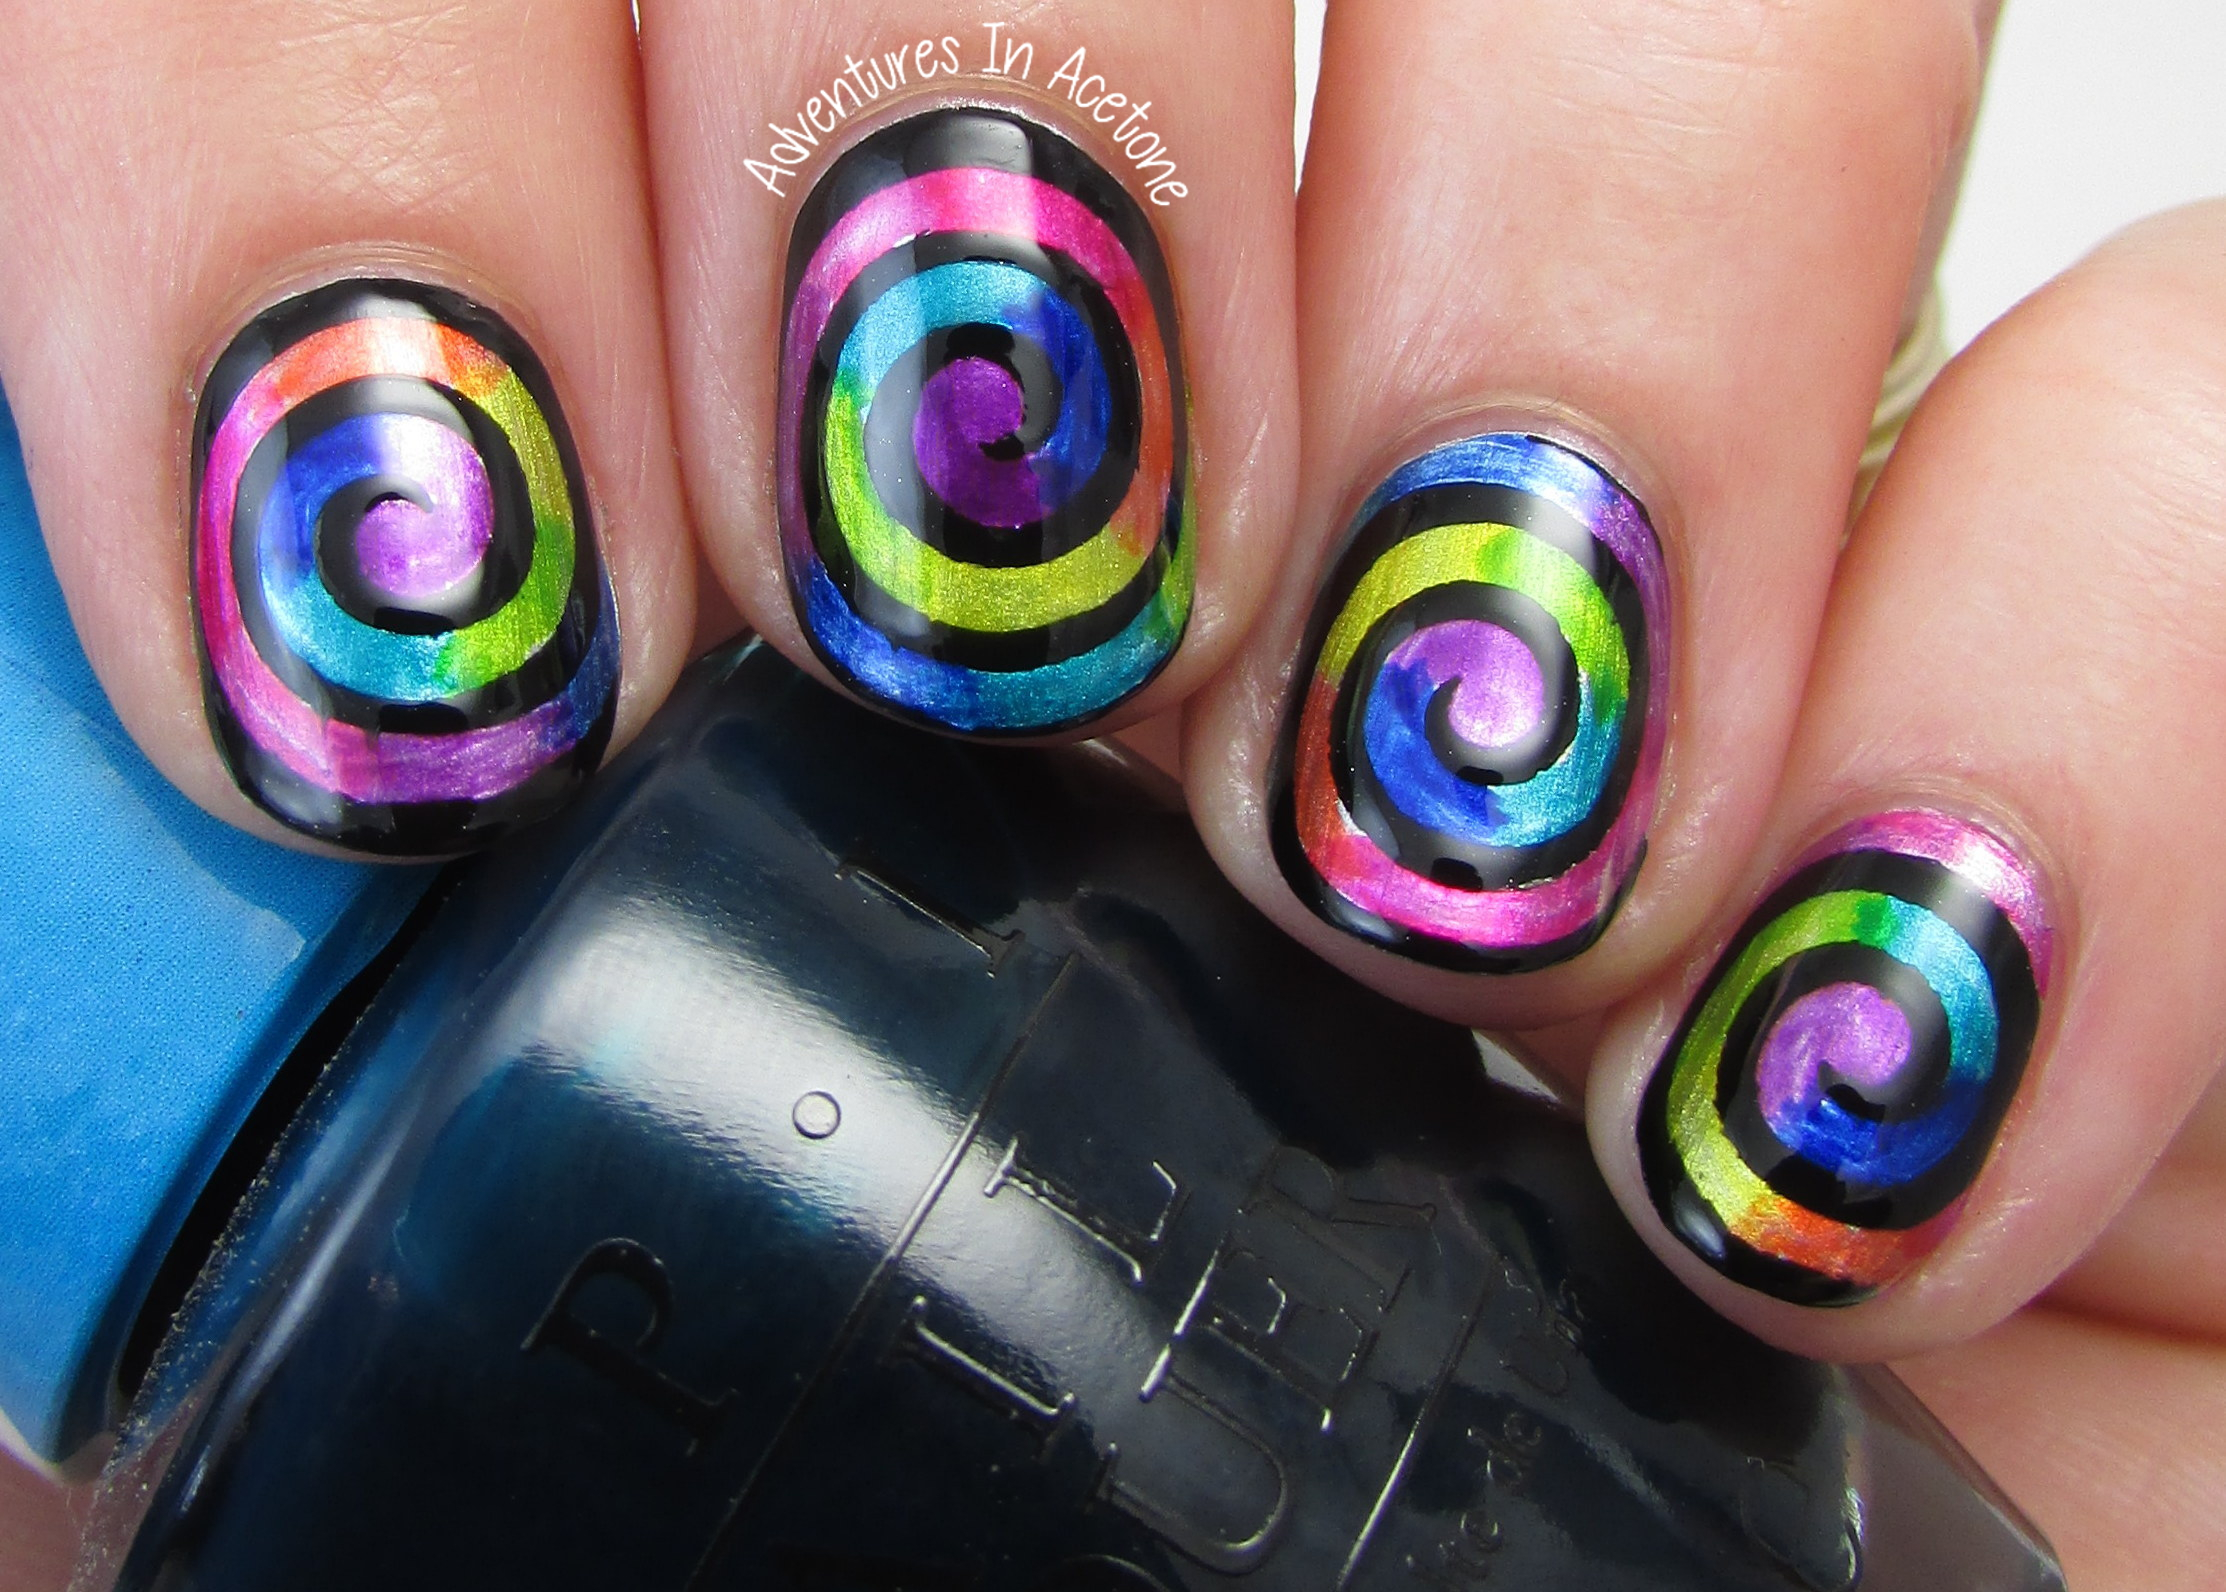 Groovy Swirls with OPI Color Paints! - Adventures In Acetone